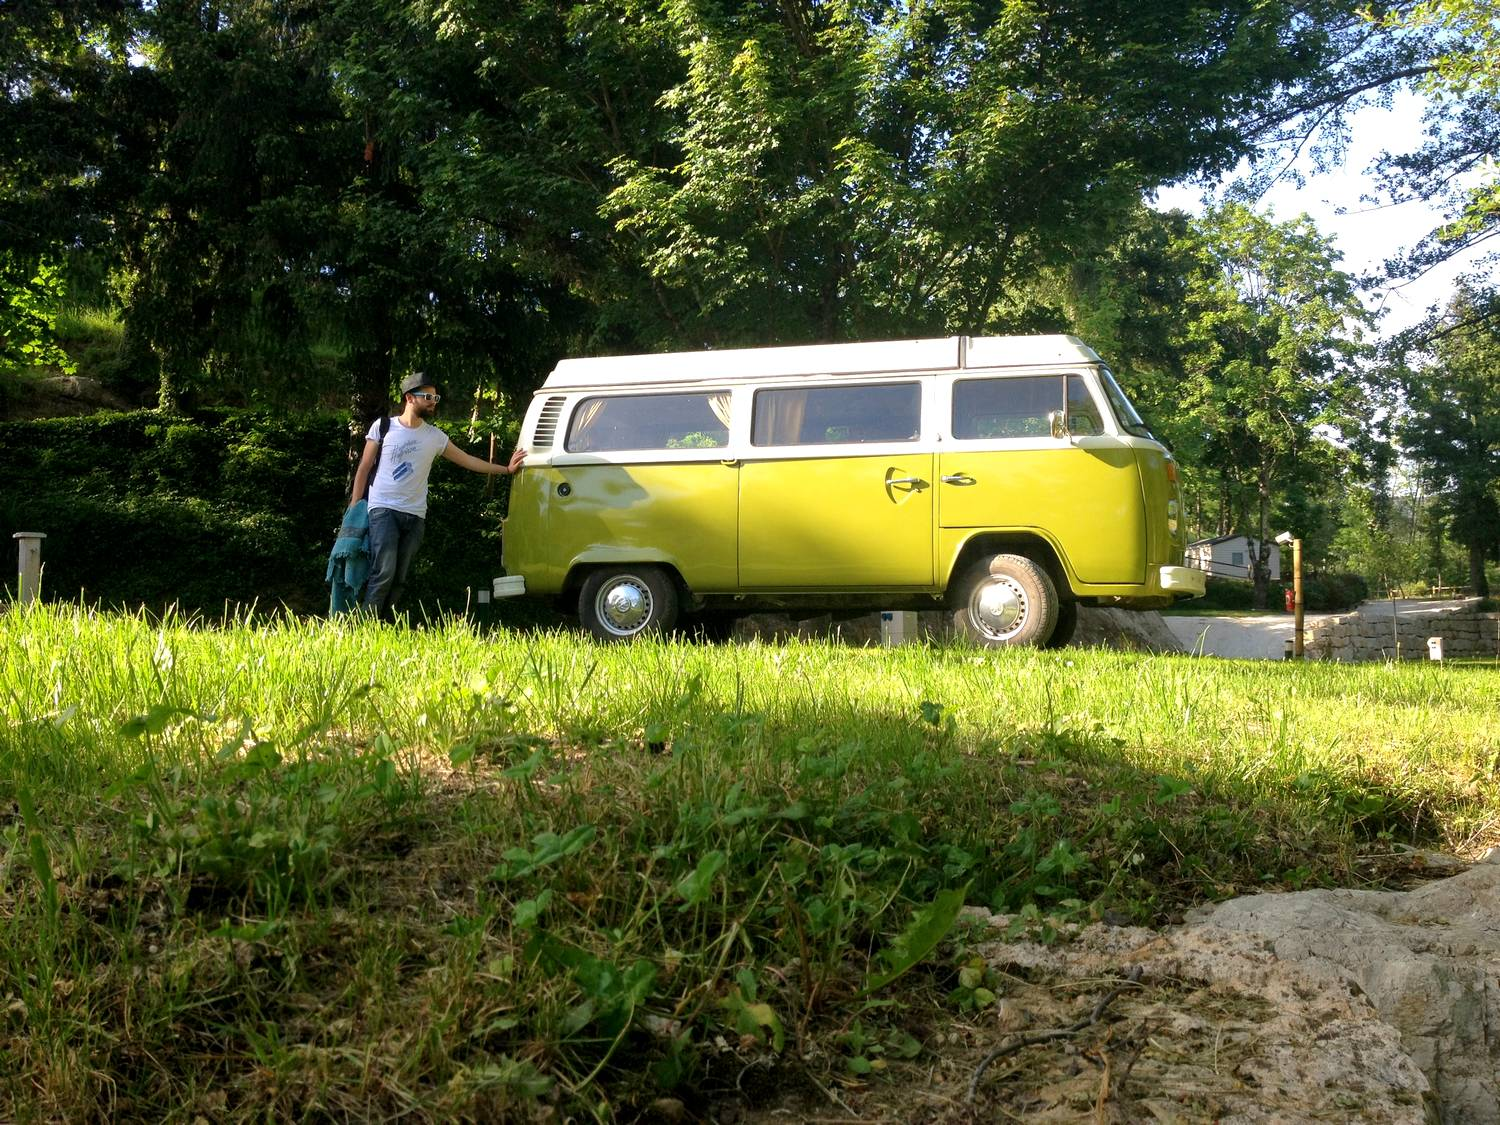 Seb and Scooby, the CevVan van - Salendrinque camping site, France